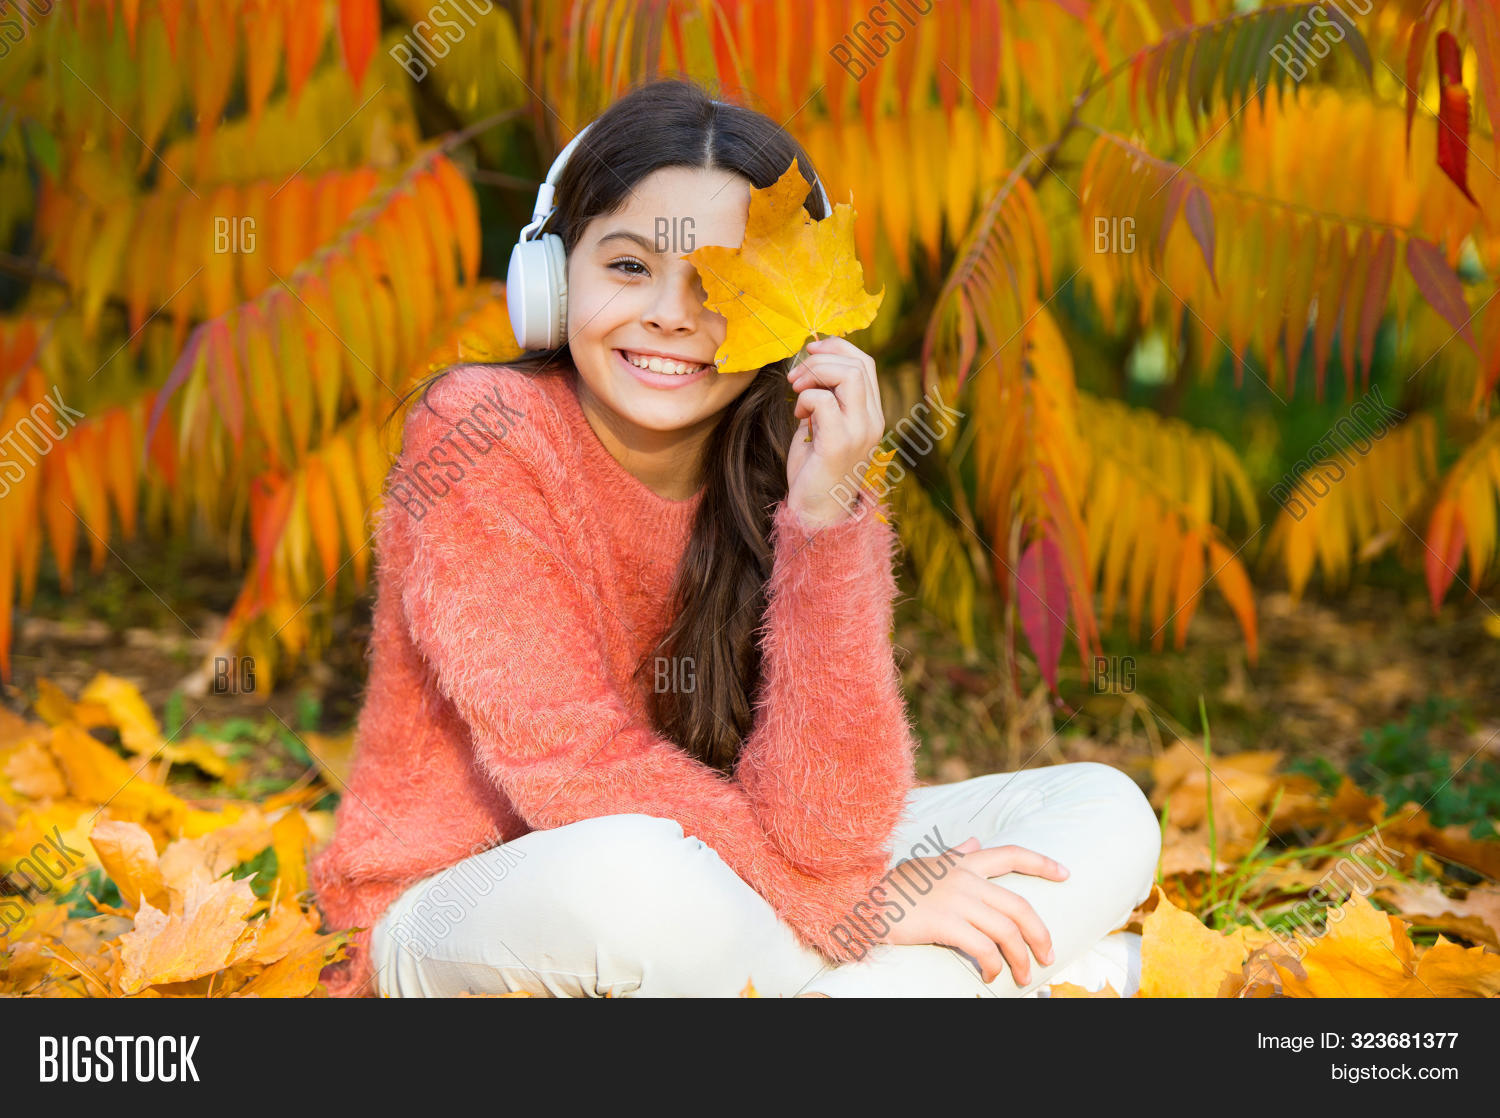 adorable,autumn,child,childhood,collection,concept,cozy,cute,day,enjoy,entertainment,fall,finally,fun,girl,happy,headphones,here,instrumental,joy,kid,listen,little,mood,music,nature,near,outdoors,playlist,pleasant,relax,relaxing,sing,singer,small,smile,song,sound,special,total,tree,warm